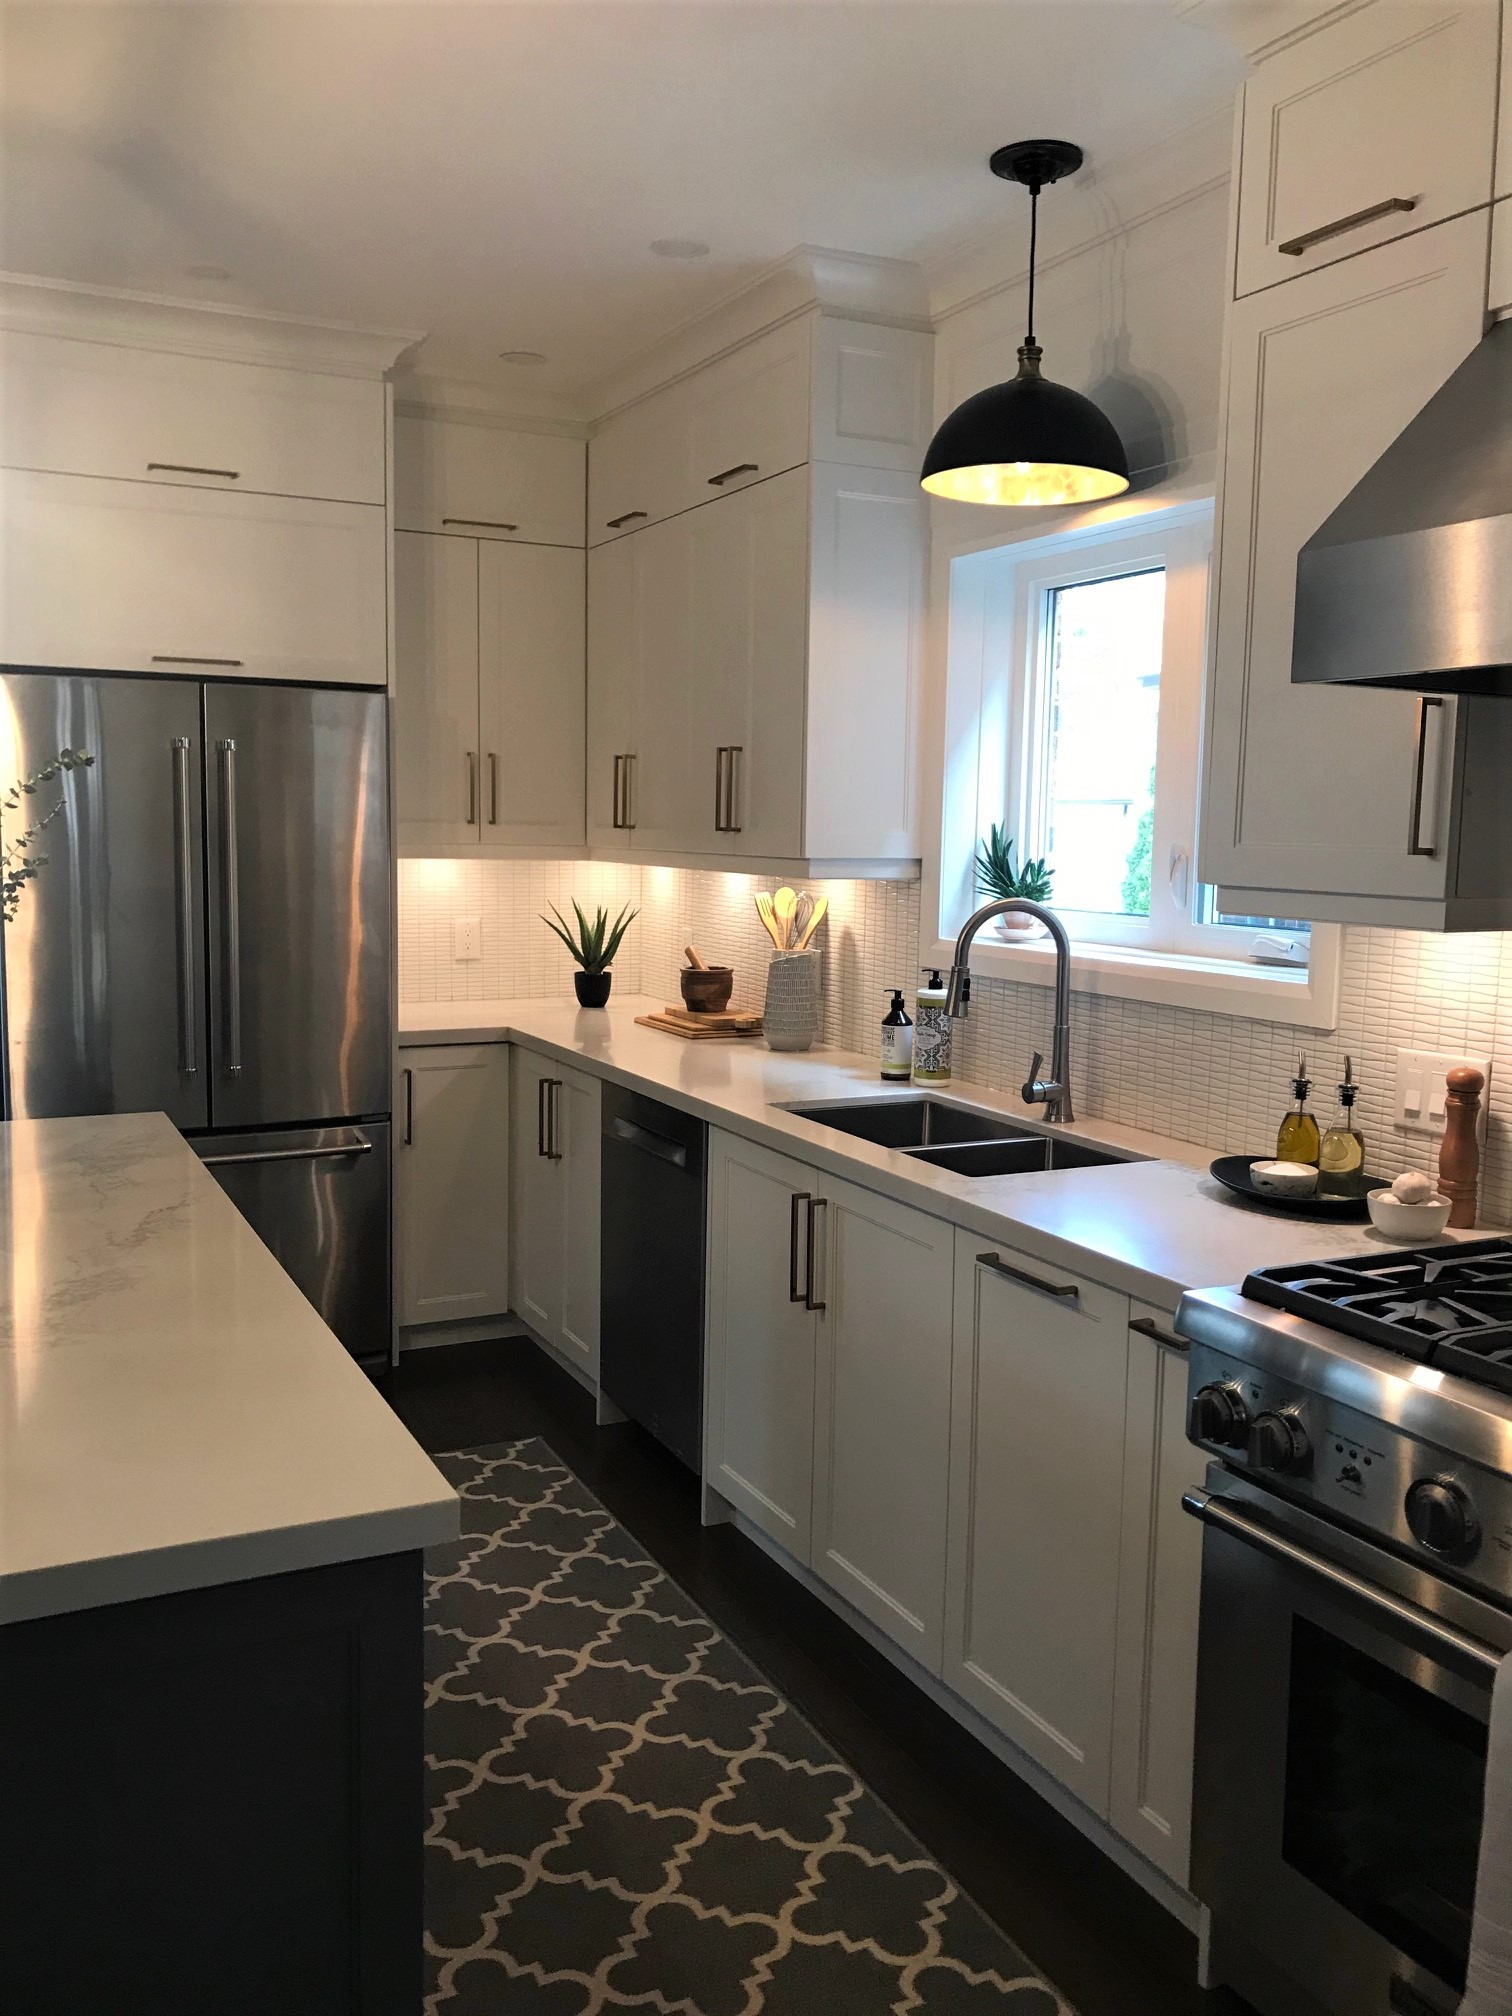 Home Front Redesigns Kennedy Avenue Project Kitchen Photo1